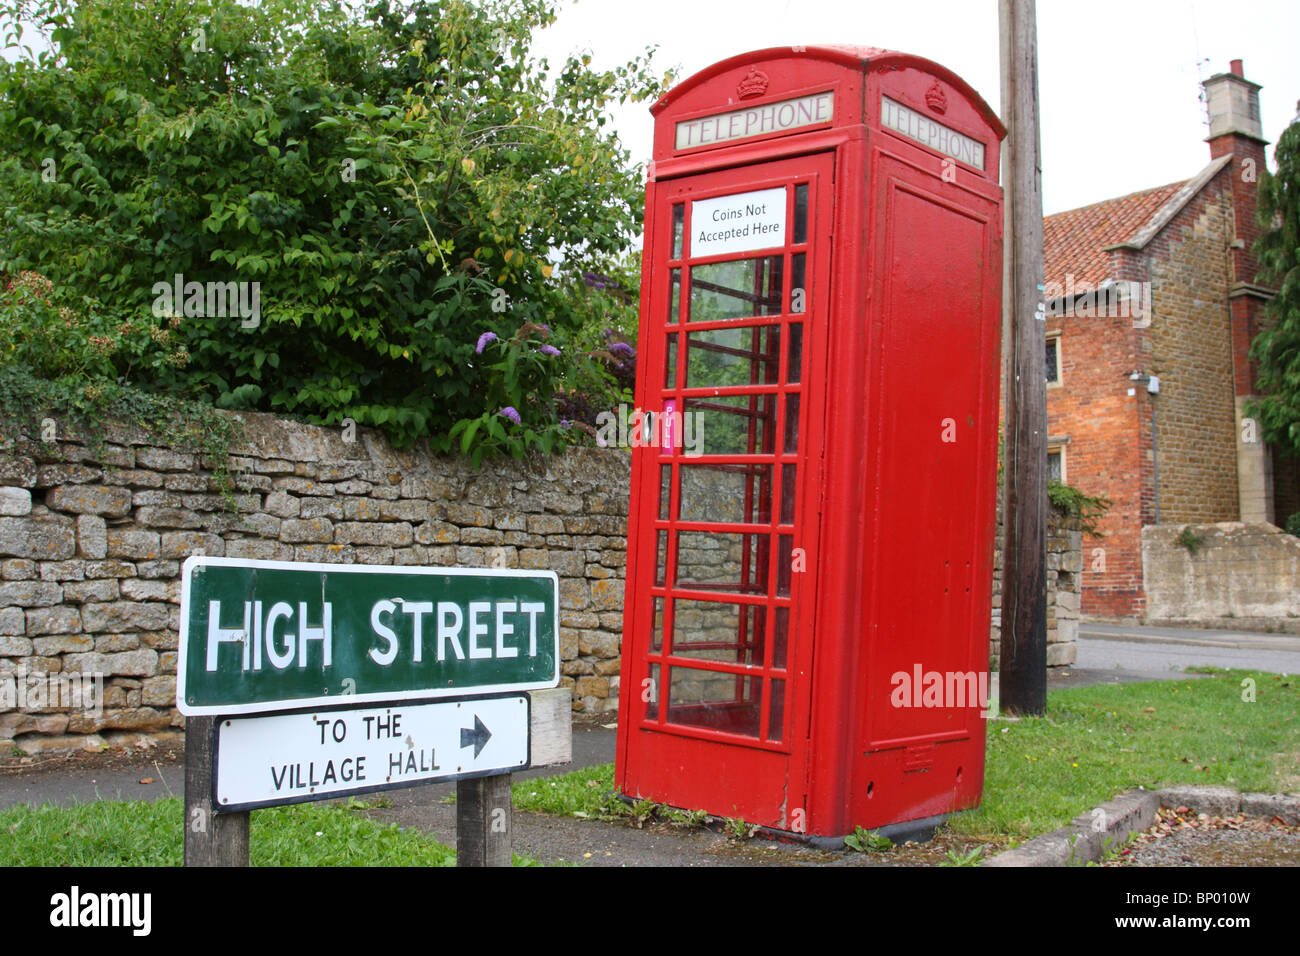 A traditional red telephone box on a street in a U.K. village. - Stock Image